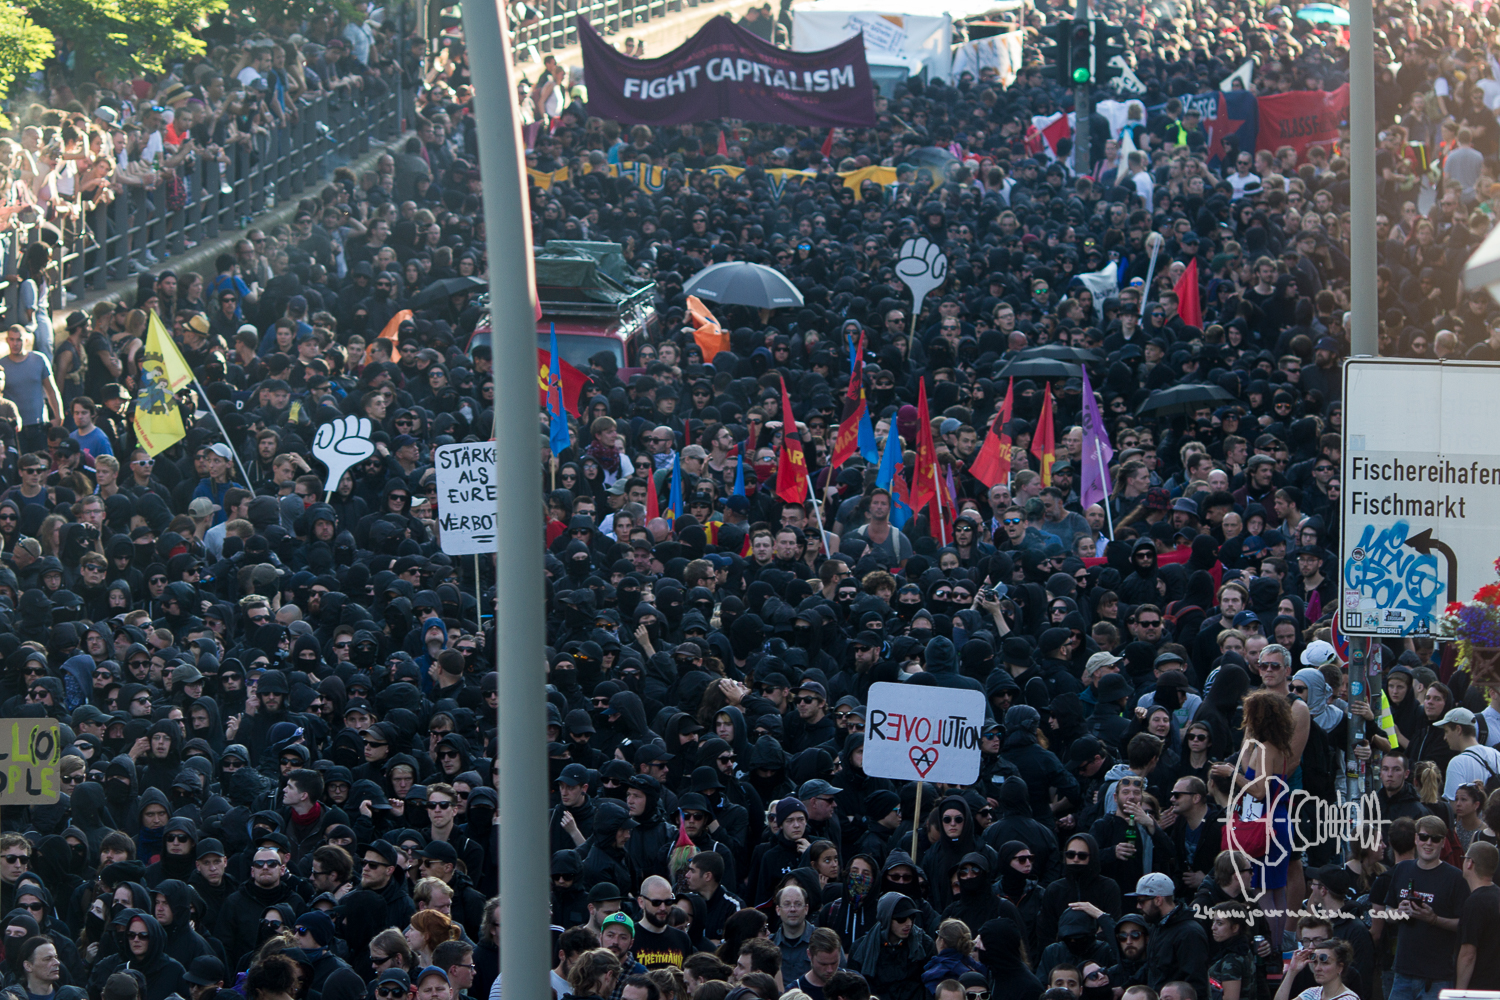 More then 10.000 participate in the anti-G20 demonstration